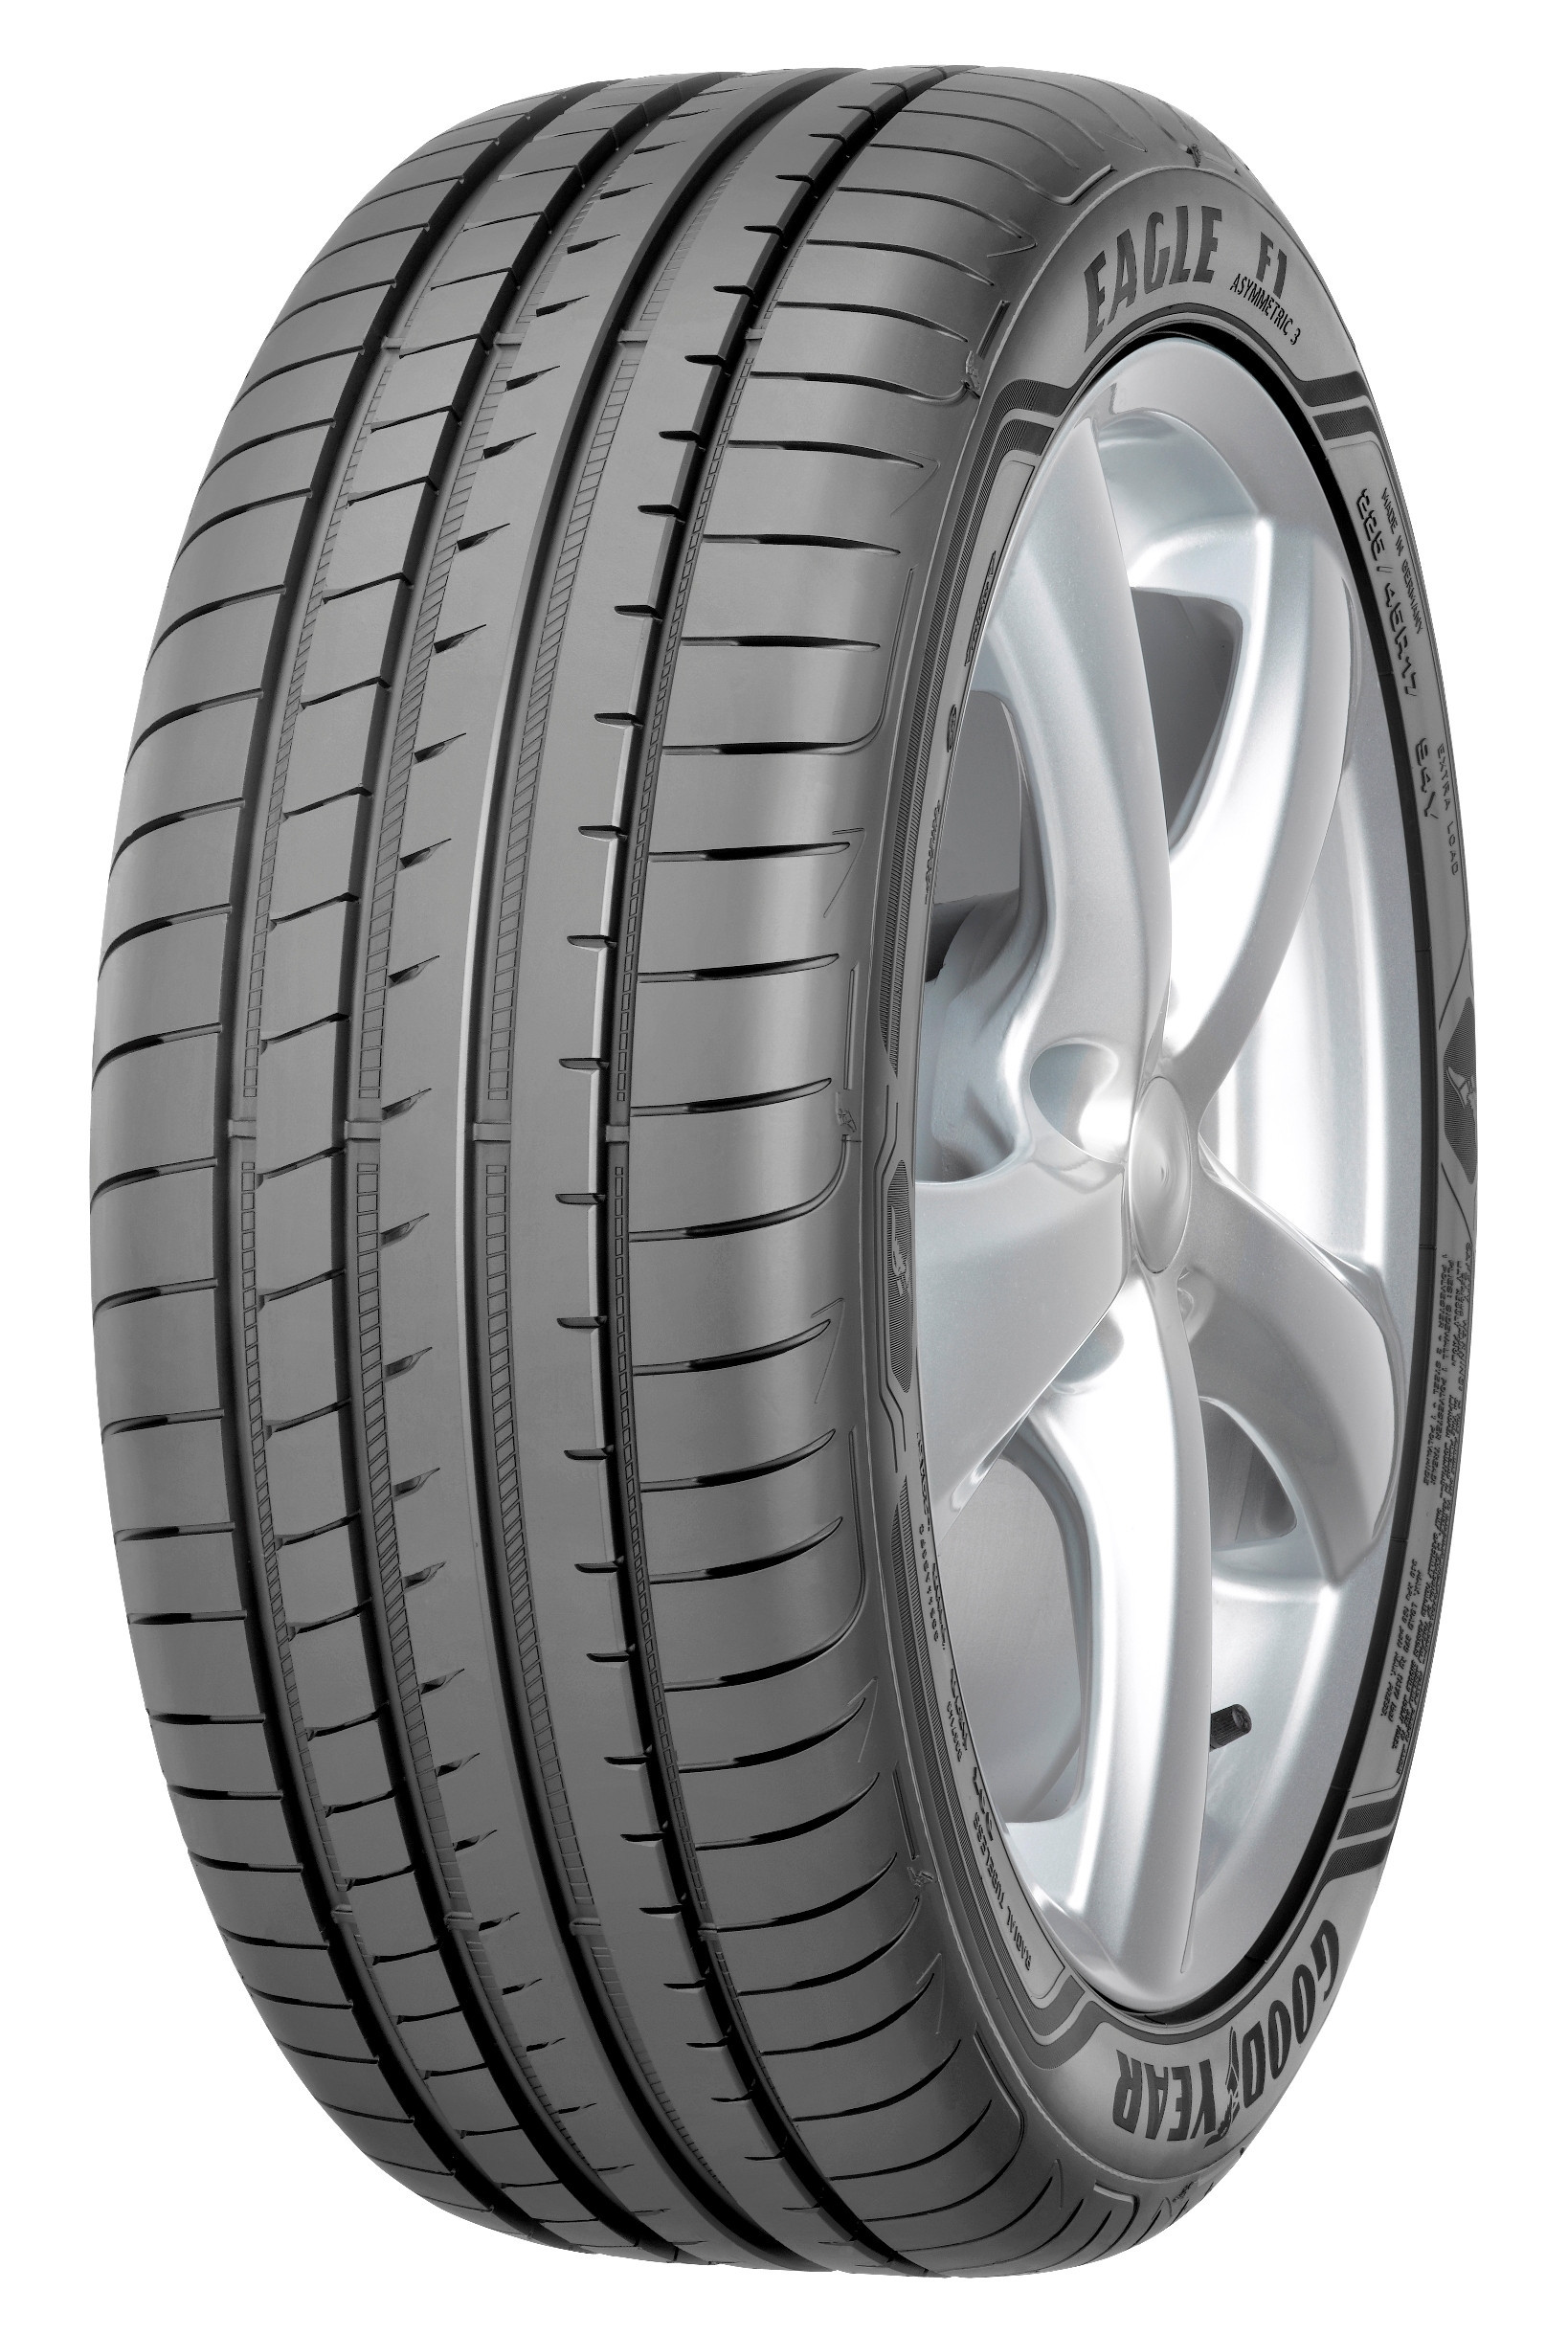 Anvelopa Vara 245/45R17 99Y Goodyear Eagle F1 Asymmetric3